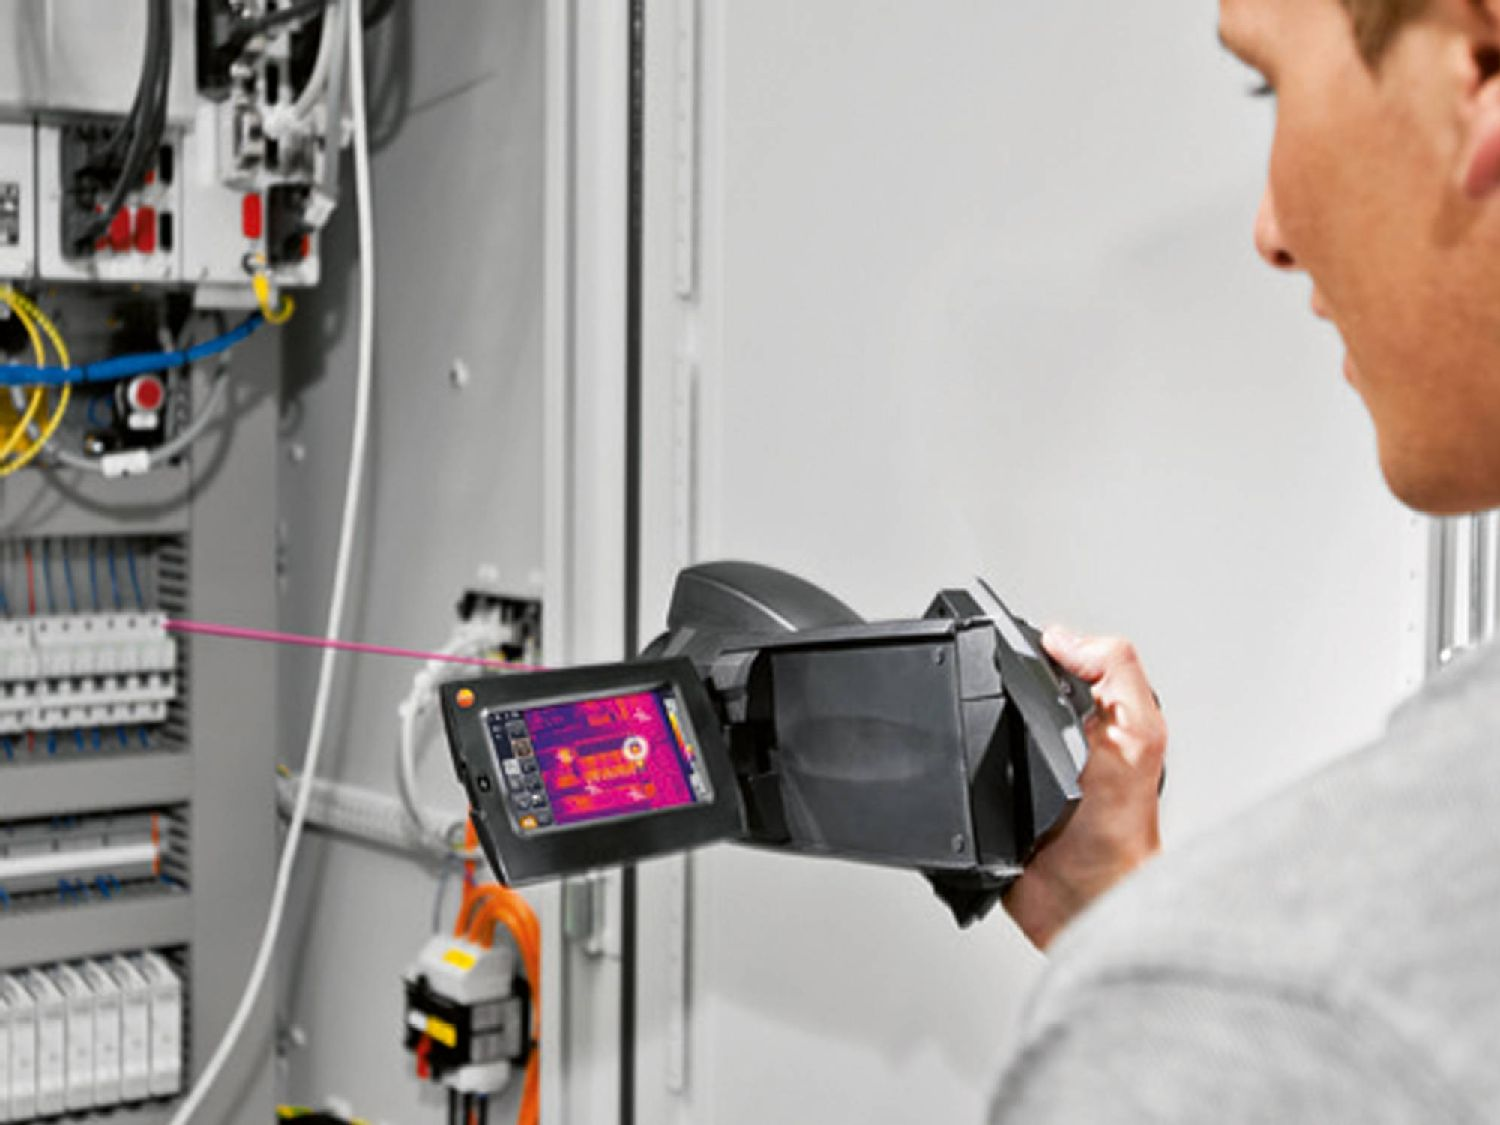 Analyzing thermal images